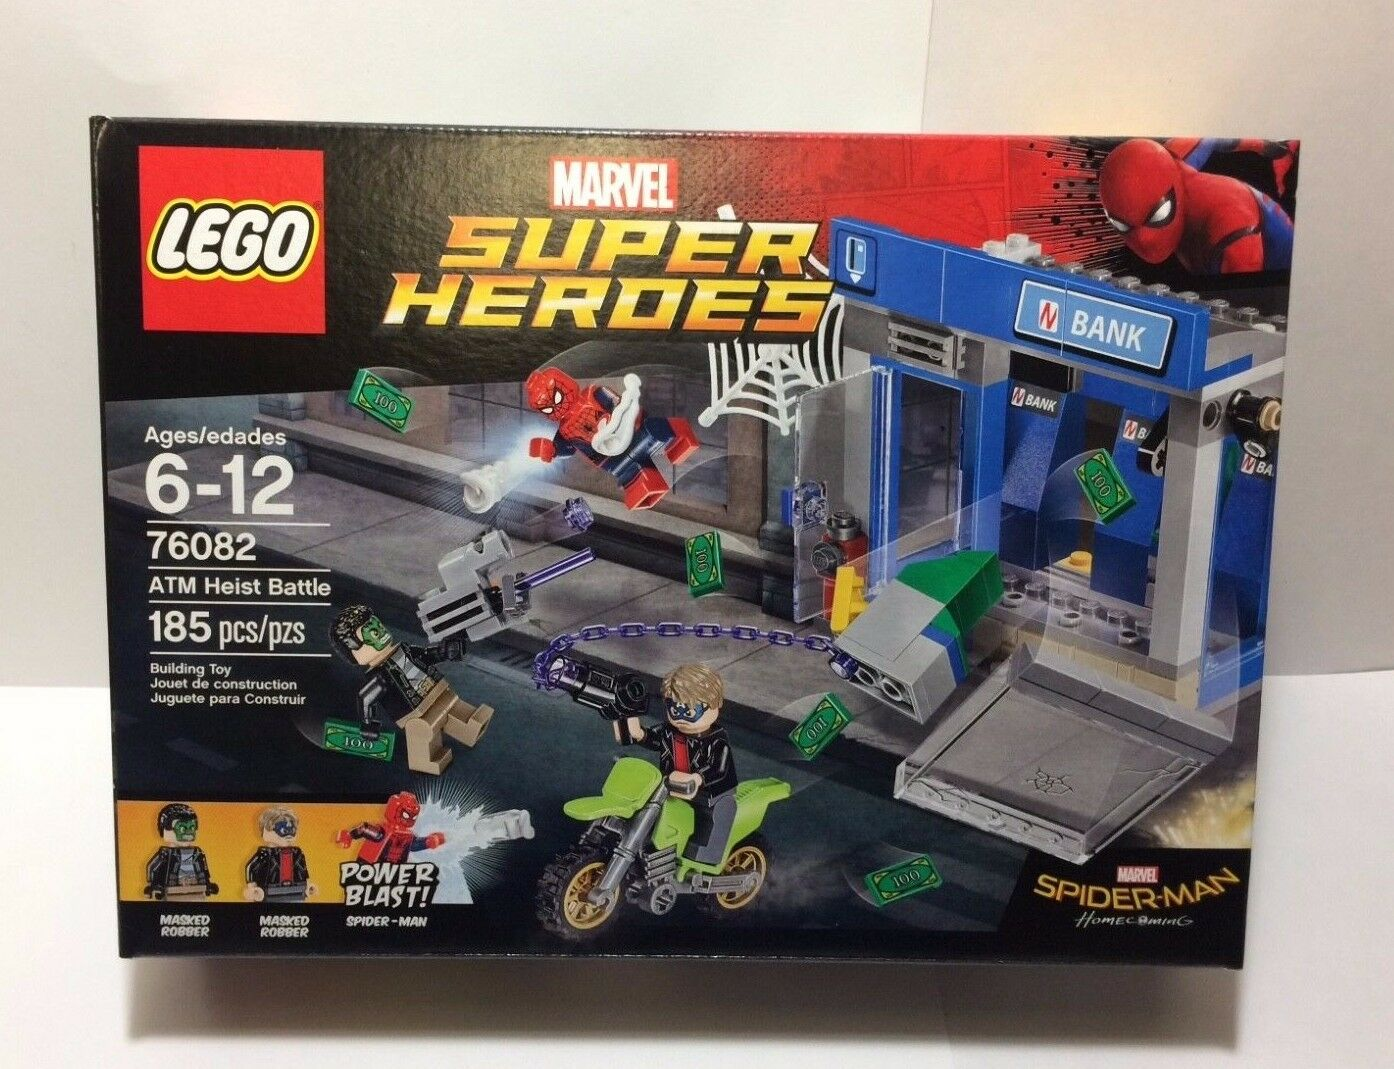 Brand New New New and Sealed LEGO 76082 Marvel Super Heroes ATM Heist Battle  SPIDER MAN 5045c9